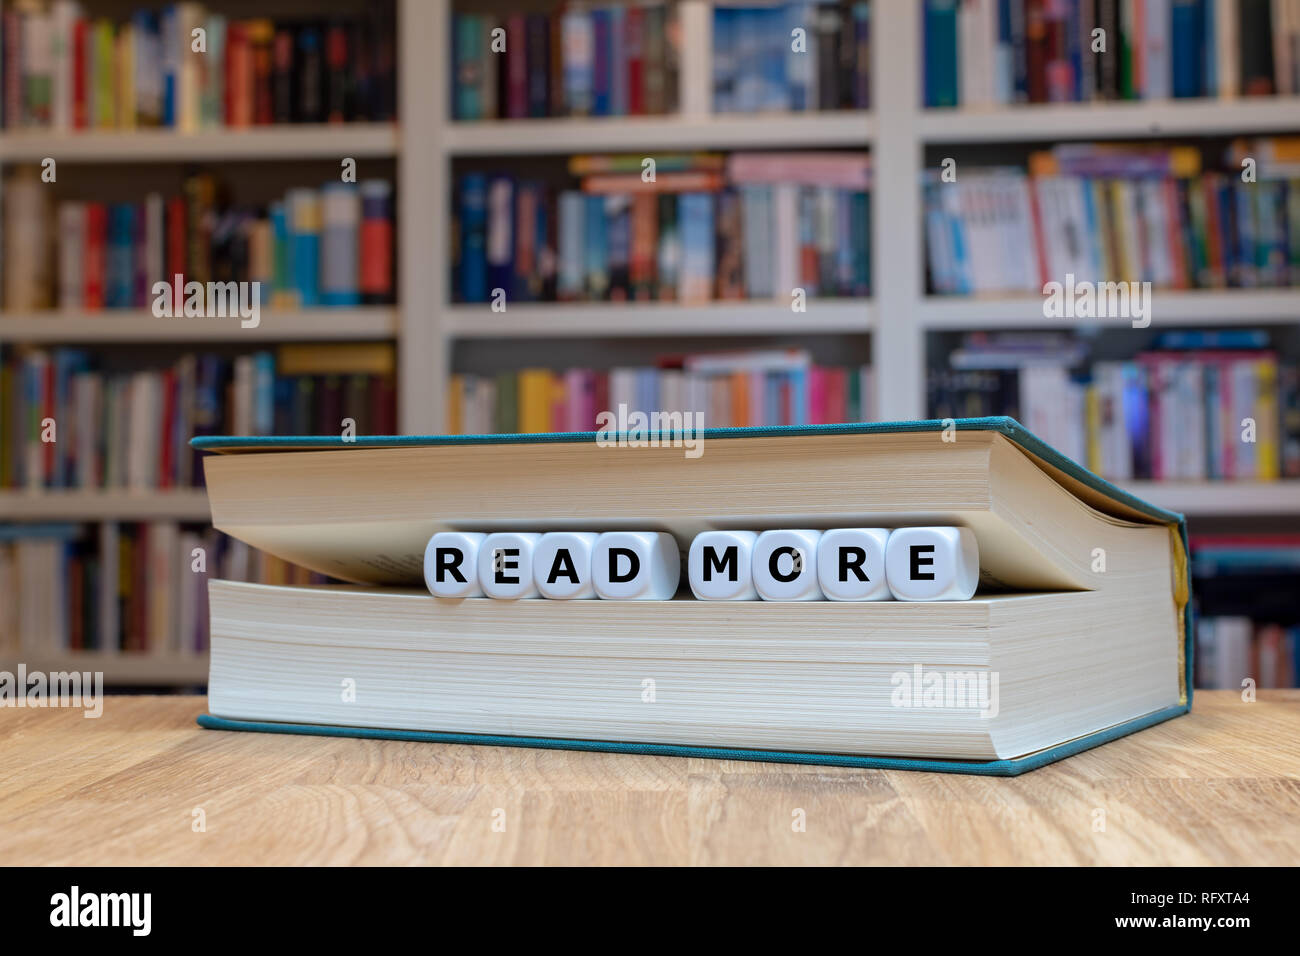 Dice in a book form the words 'read more'. Book is lying on a wooden desk infront of a bookshelf. - Stock Image